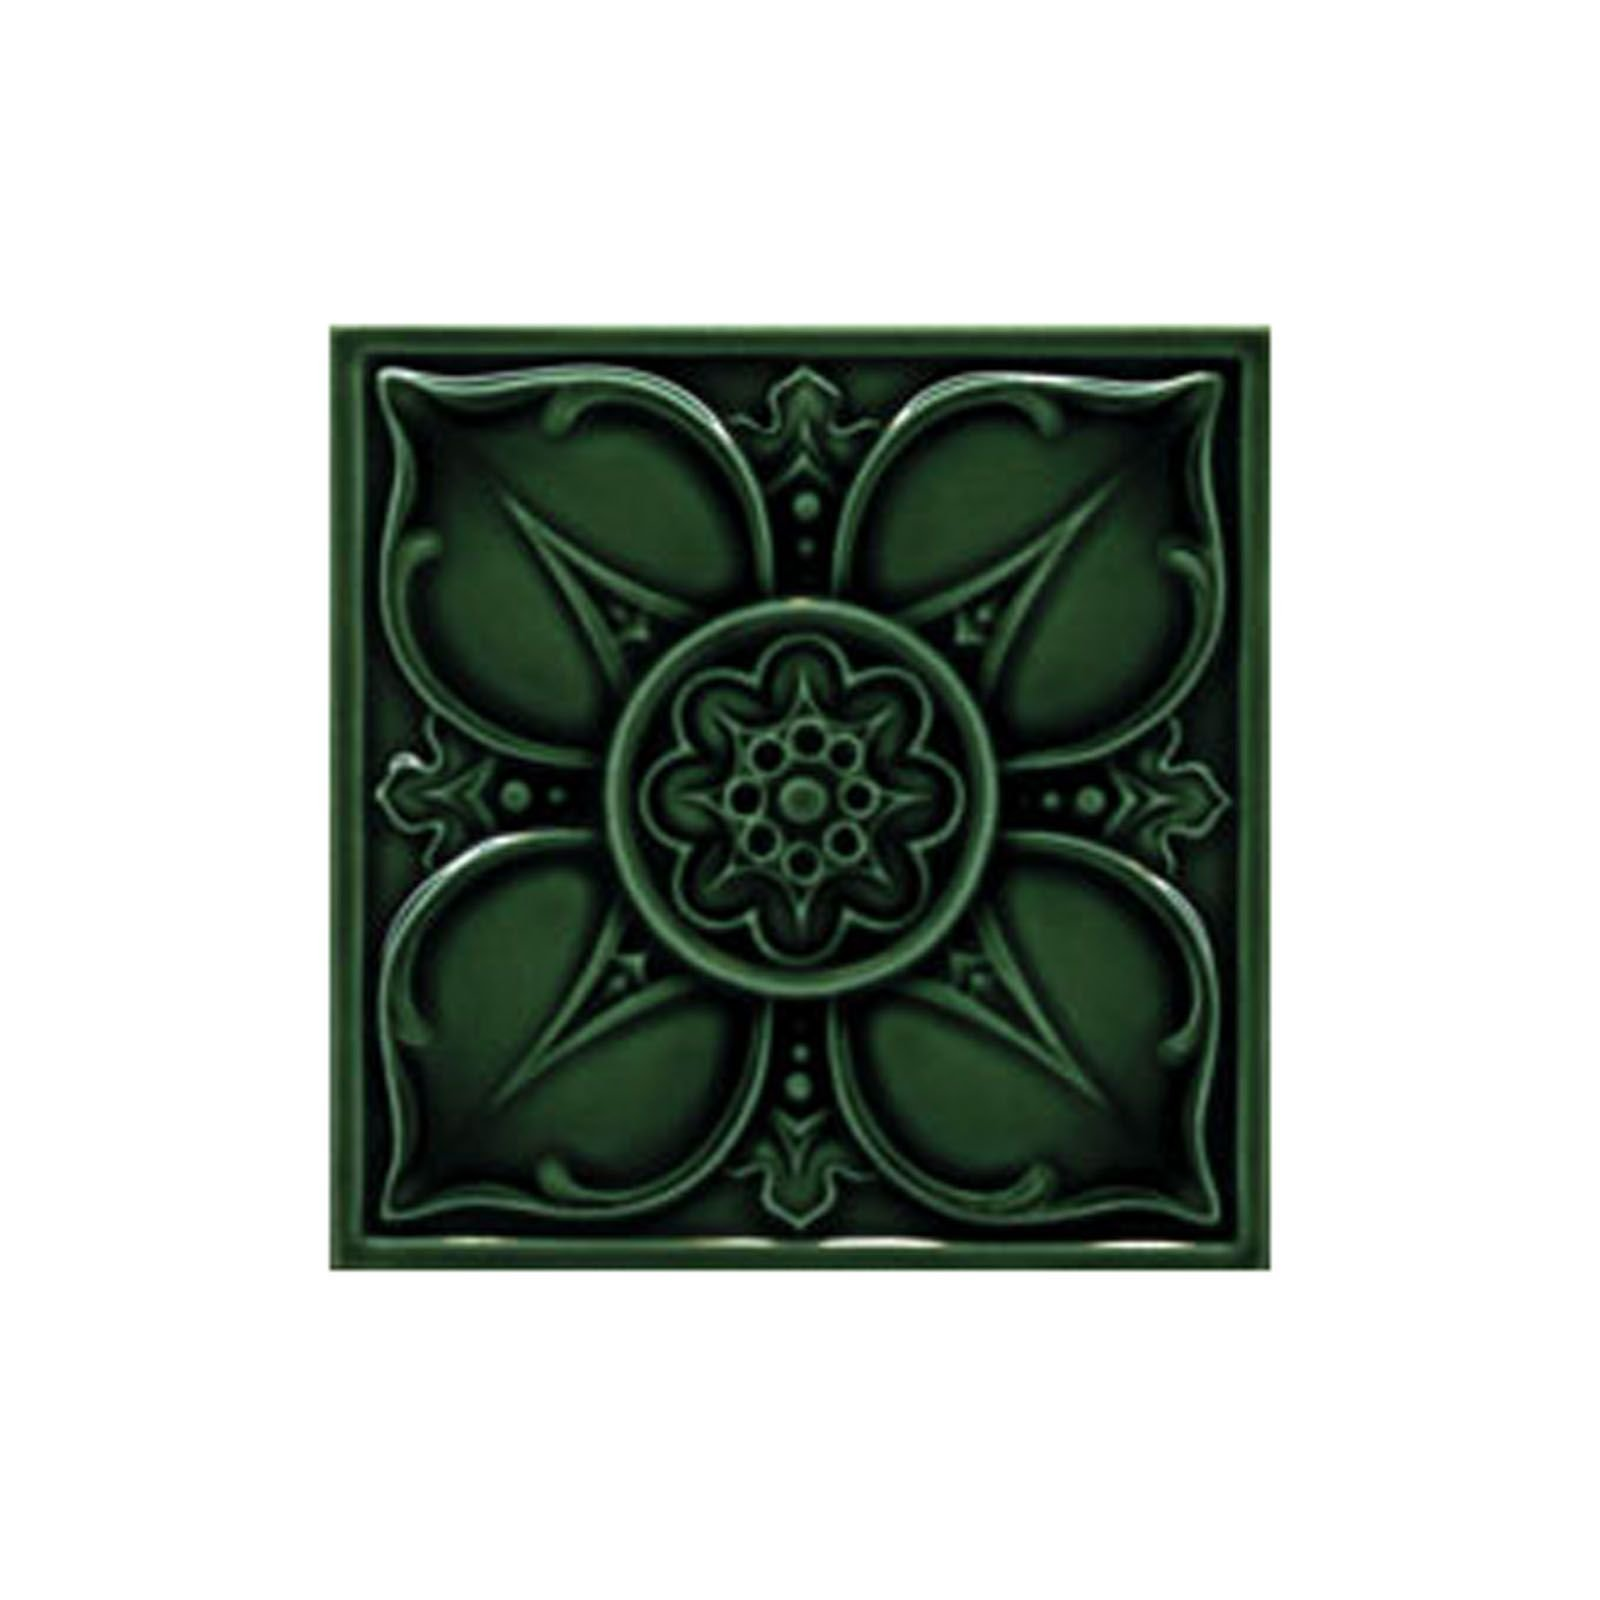 Decorative Wall Tile Patterns : Victorian leighton single colour decorative tiles